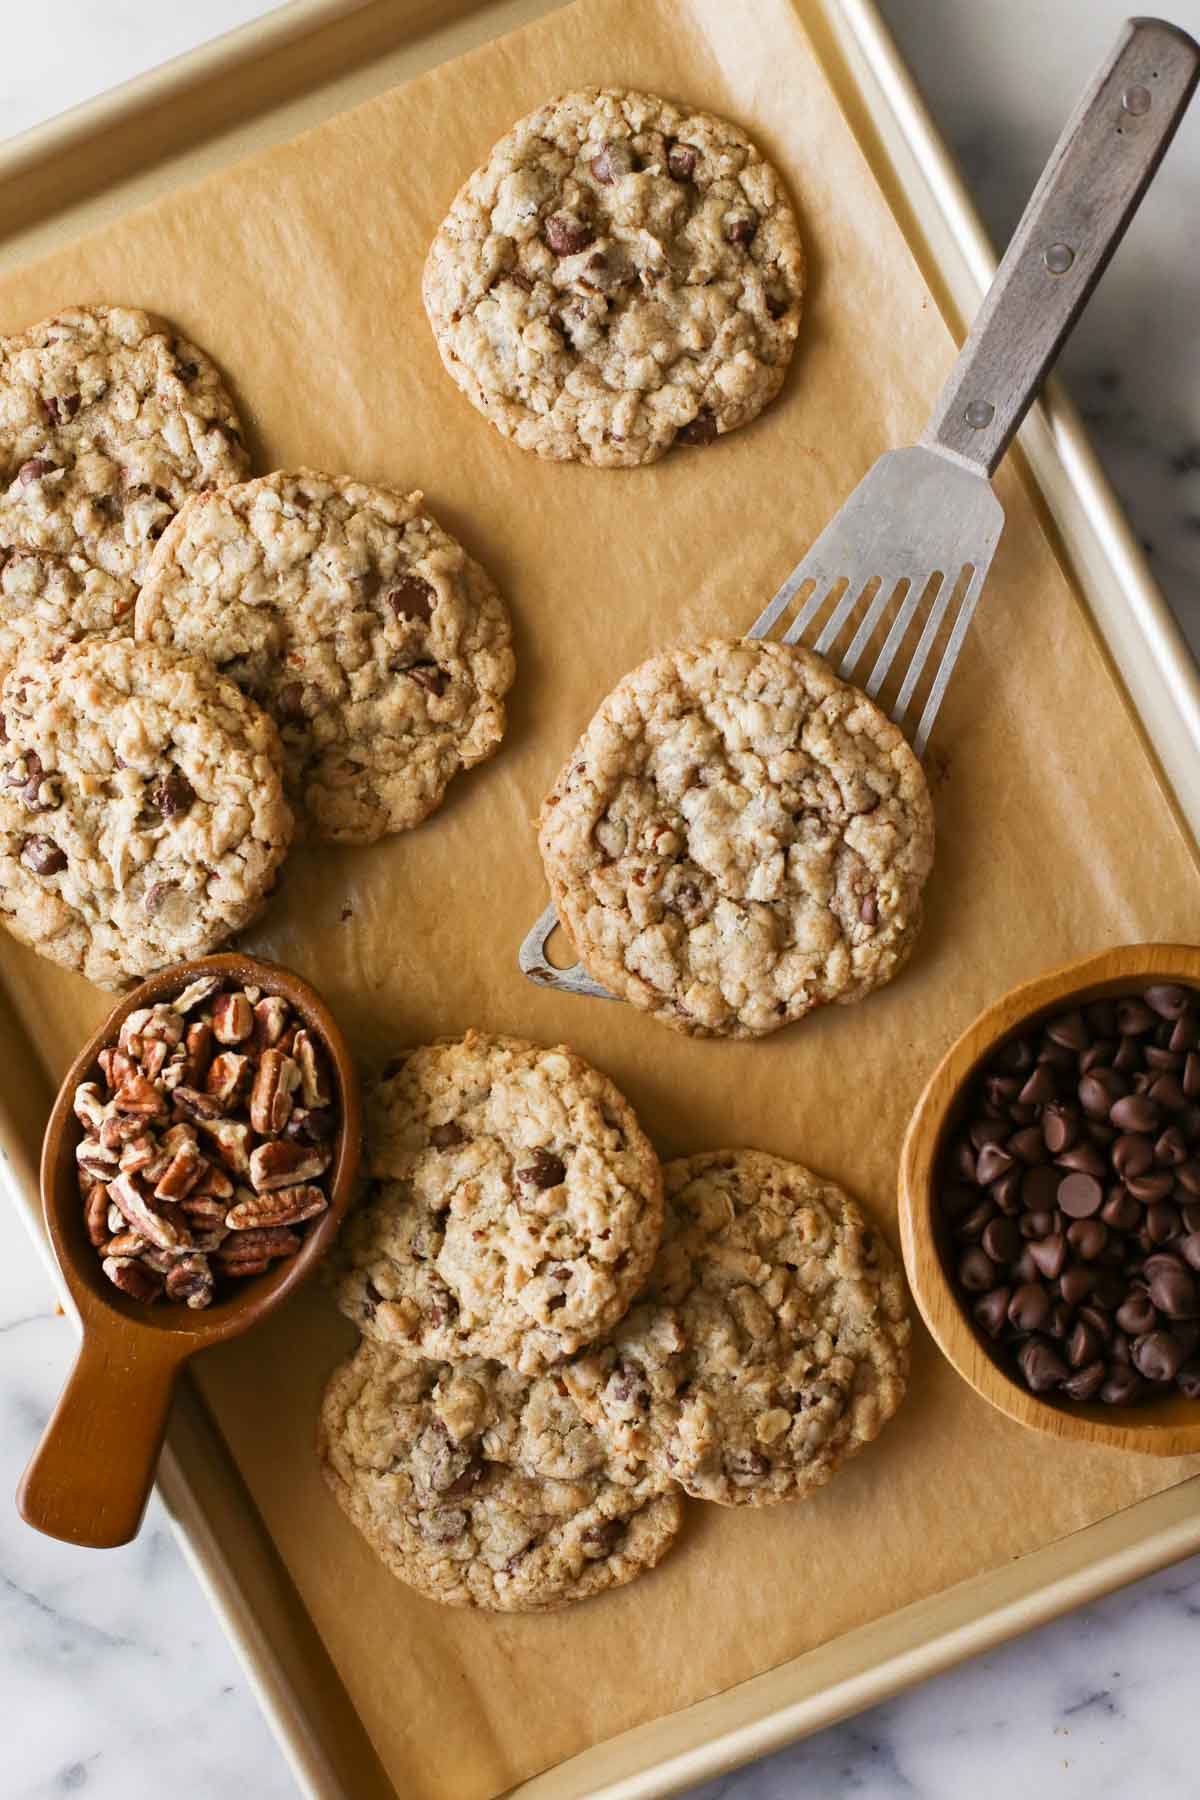 Overhead shot of Cowboy Cookies on a parchment paper lined baking sheet, along with a wood scoop full of pecans and a wood bowl of chocolate chips, and a spatula under one of the Cowboy Cookies.